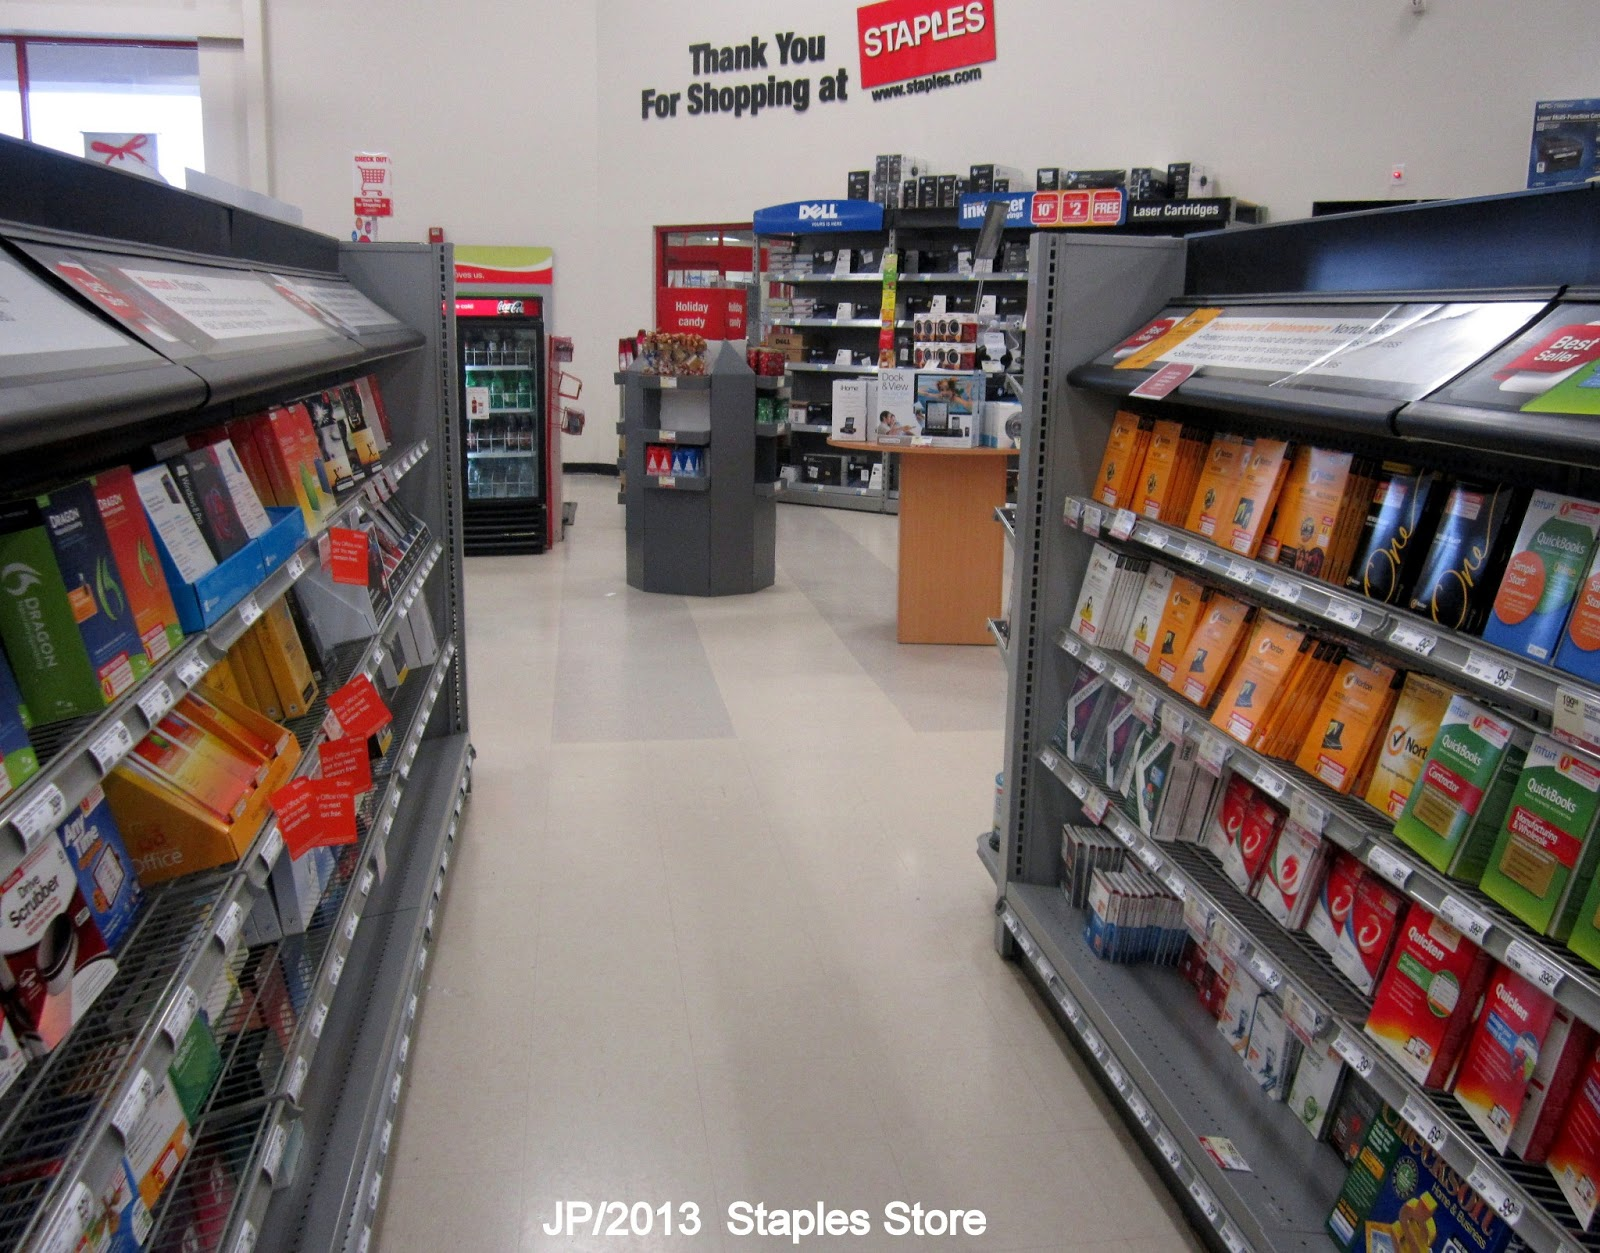 STAPLES WARNER ROBINS GEORGIA, Staples Office Supply Superstore Houston  County Warner Robins GA.